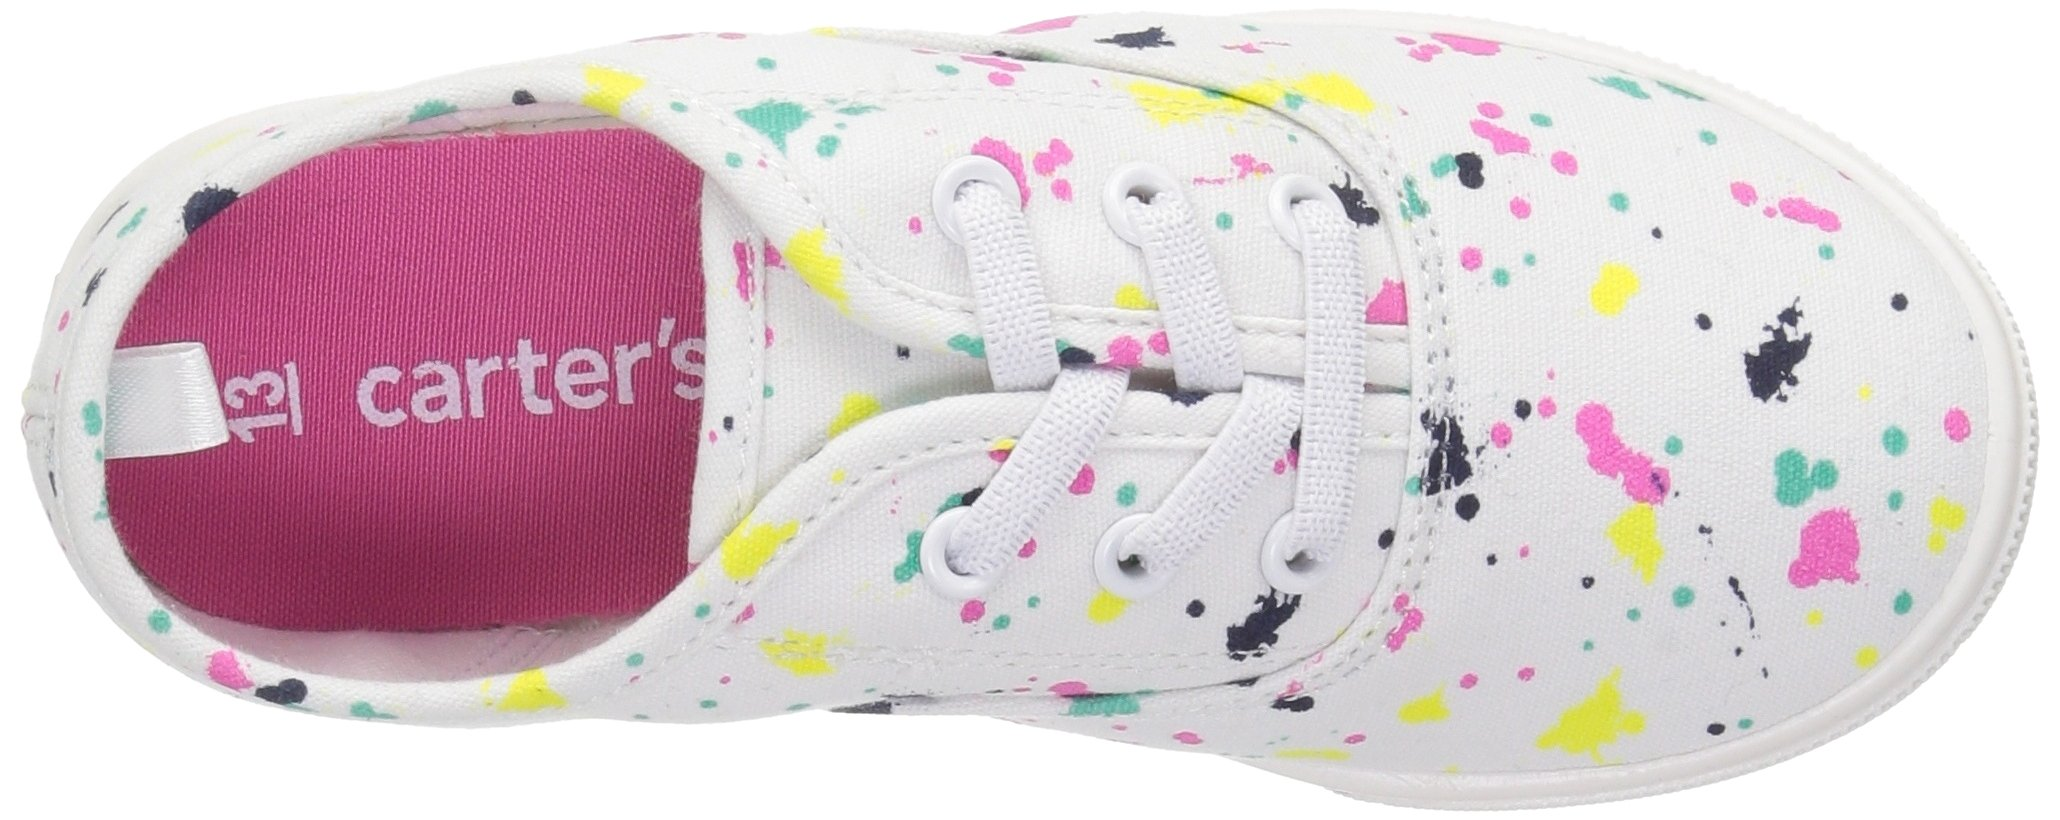 Carter's Piper Girl's Casual Sneaker, White/Print, 3 M US Little Kid by Carter's (Image #8)